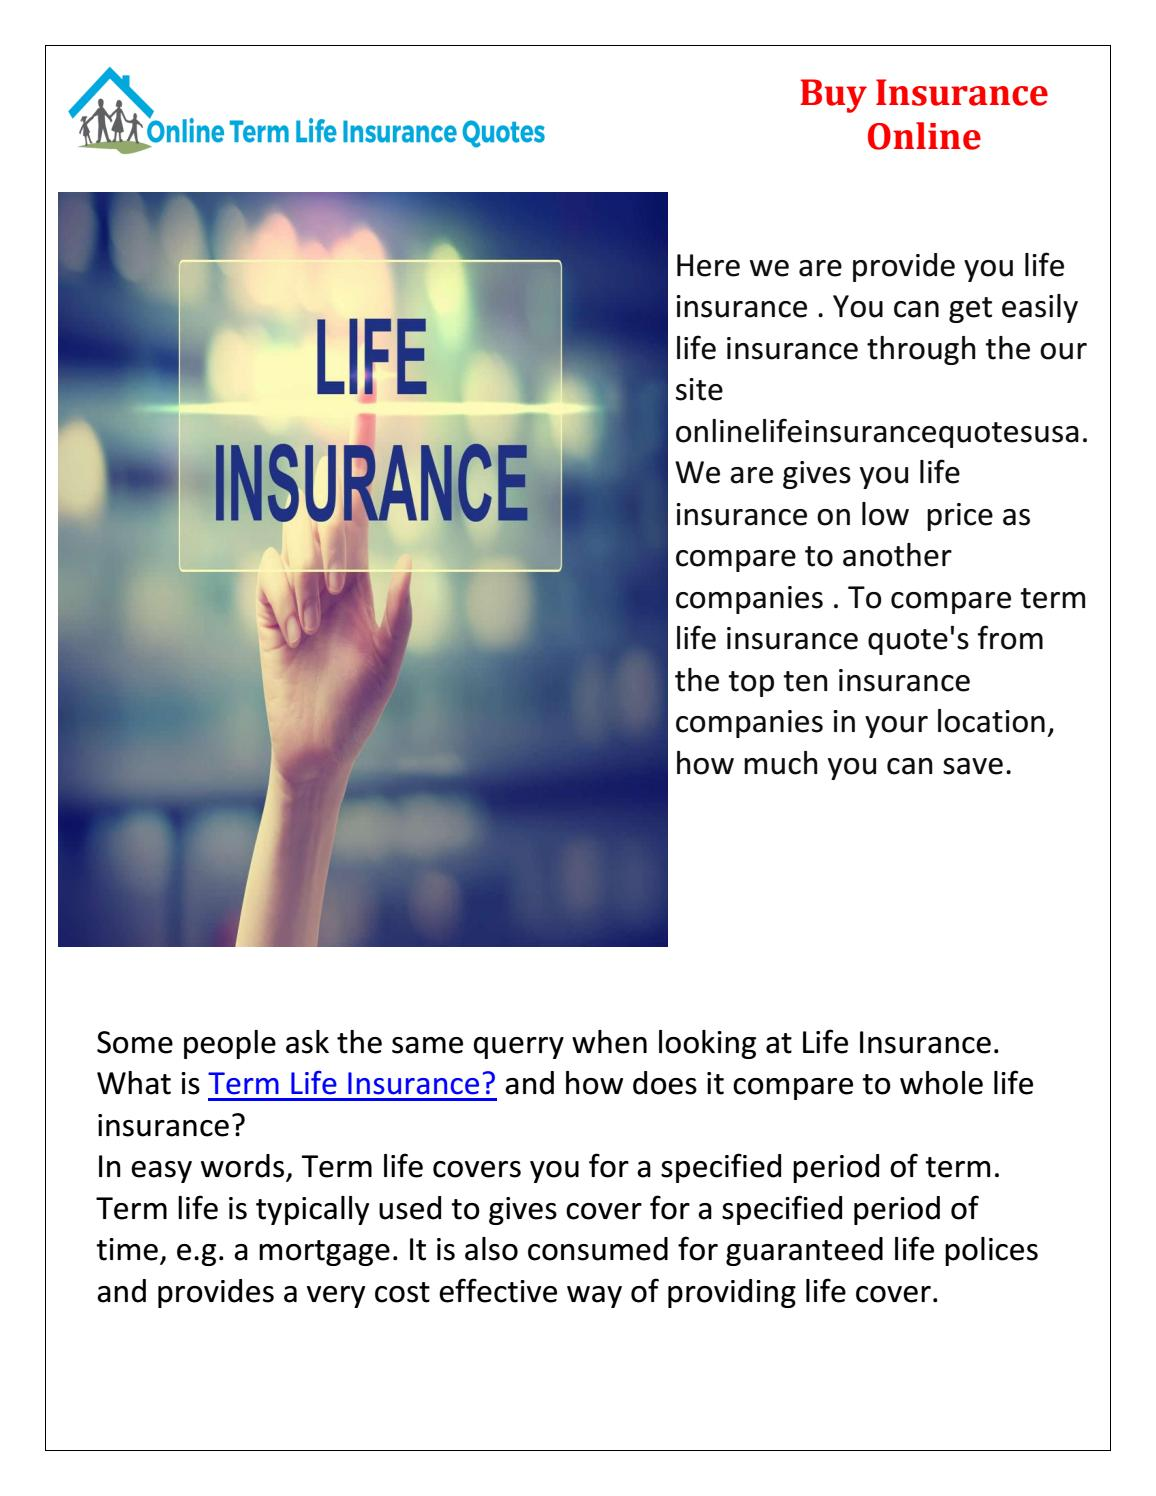 Top Ten Life Insurance Companies >> Buy Life Insruance By Onlinelifeinsurancequotes Issuu